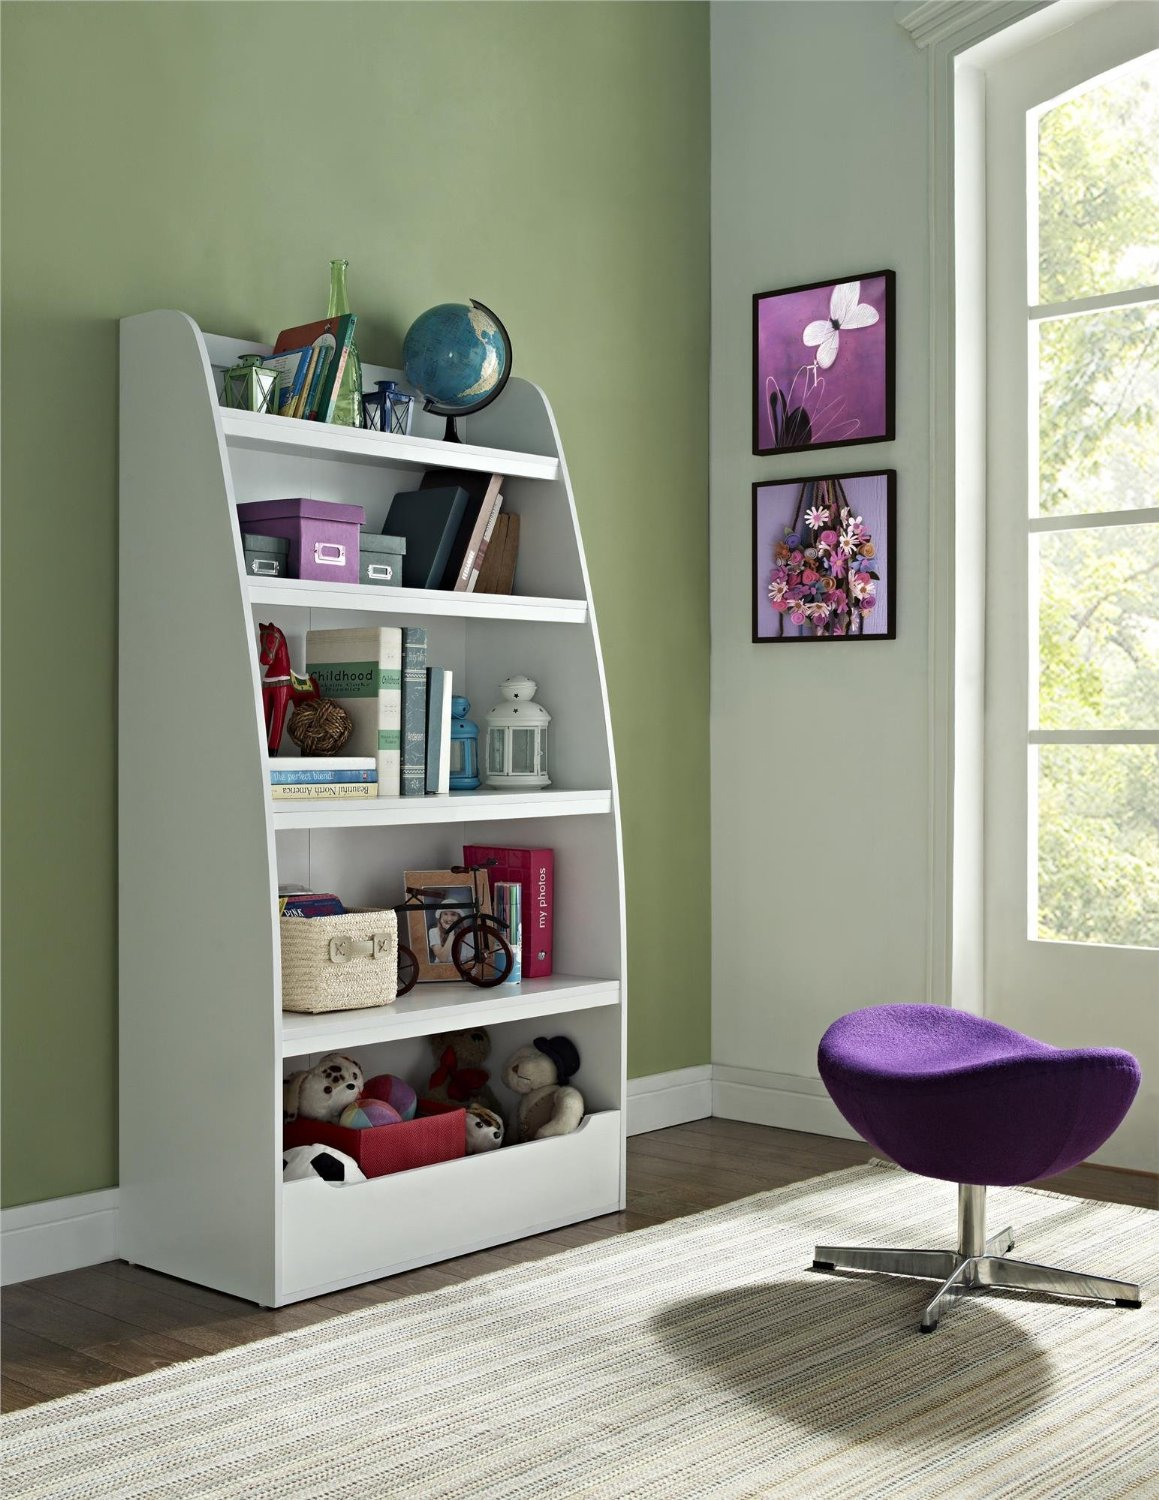 Top 12 Kids Bookcase and Bookshelves - Review